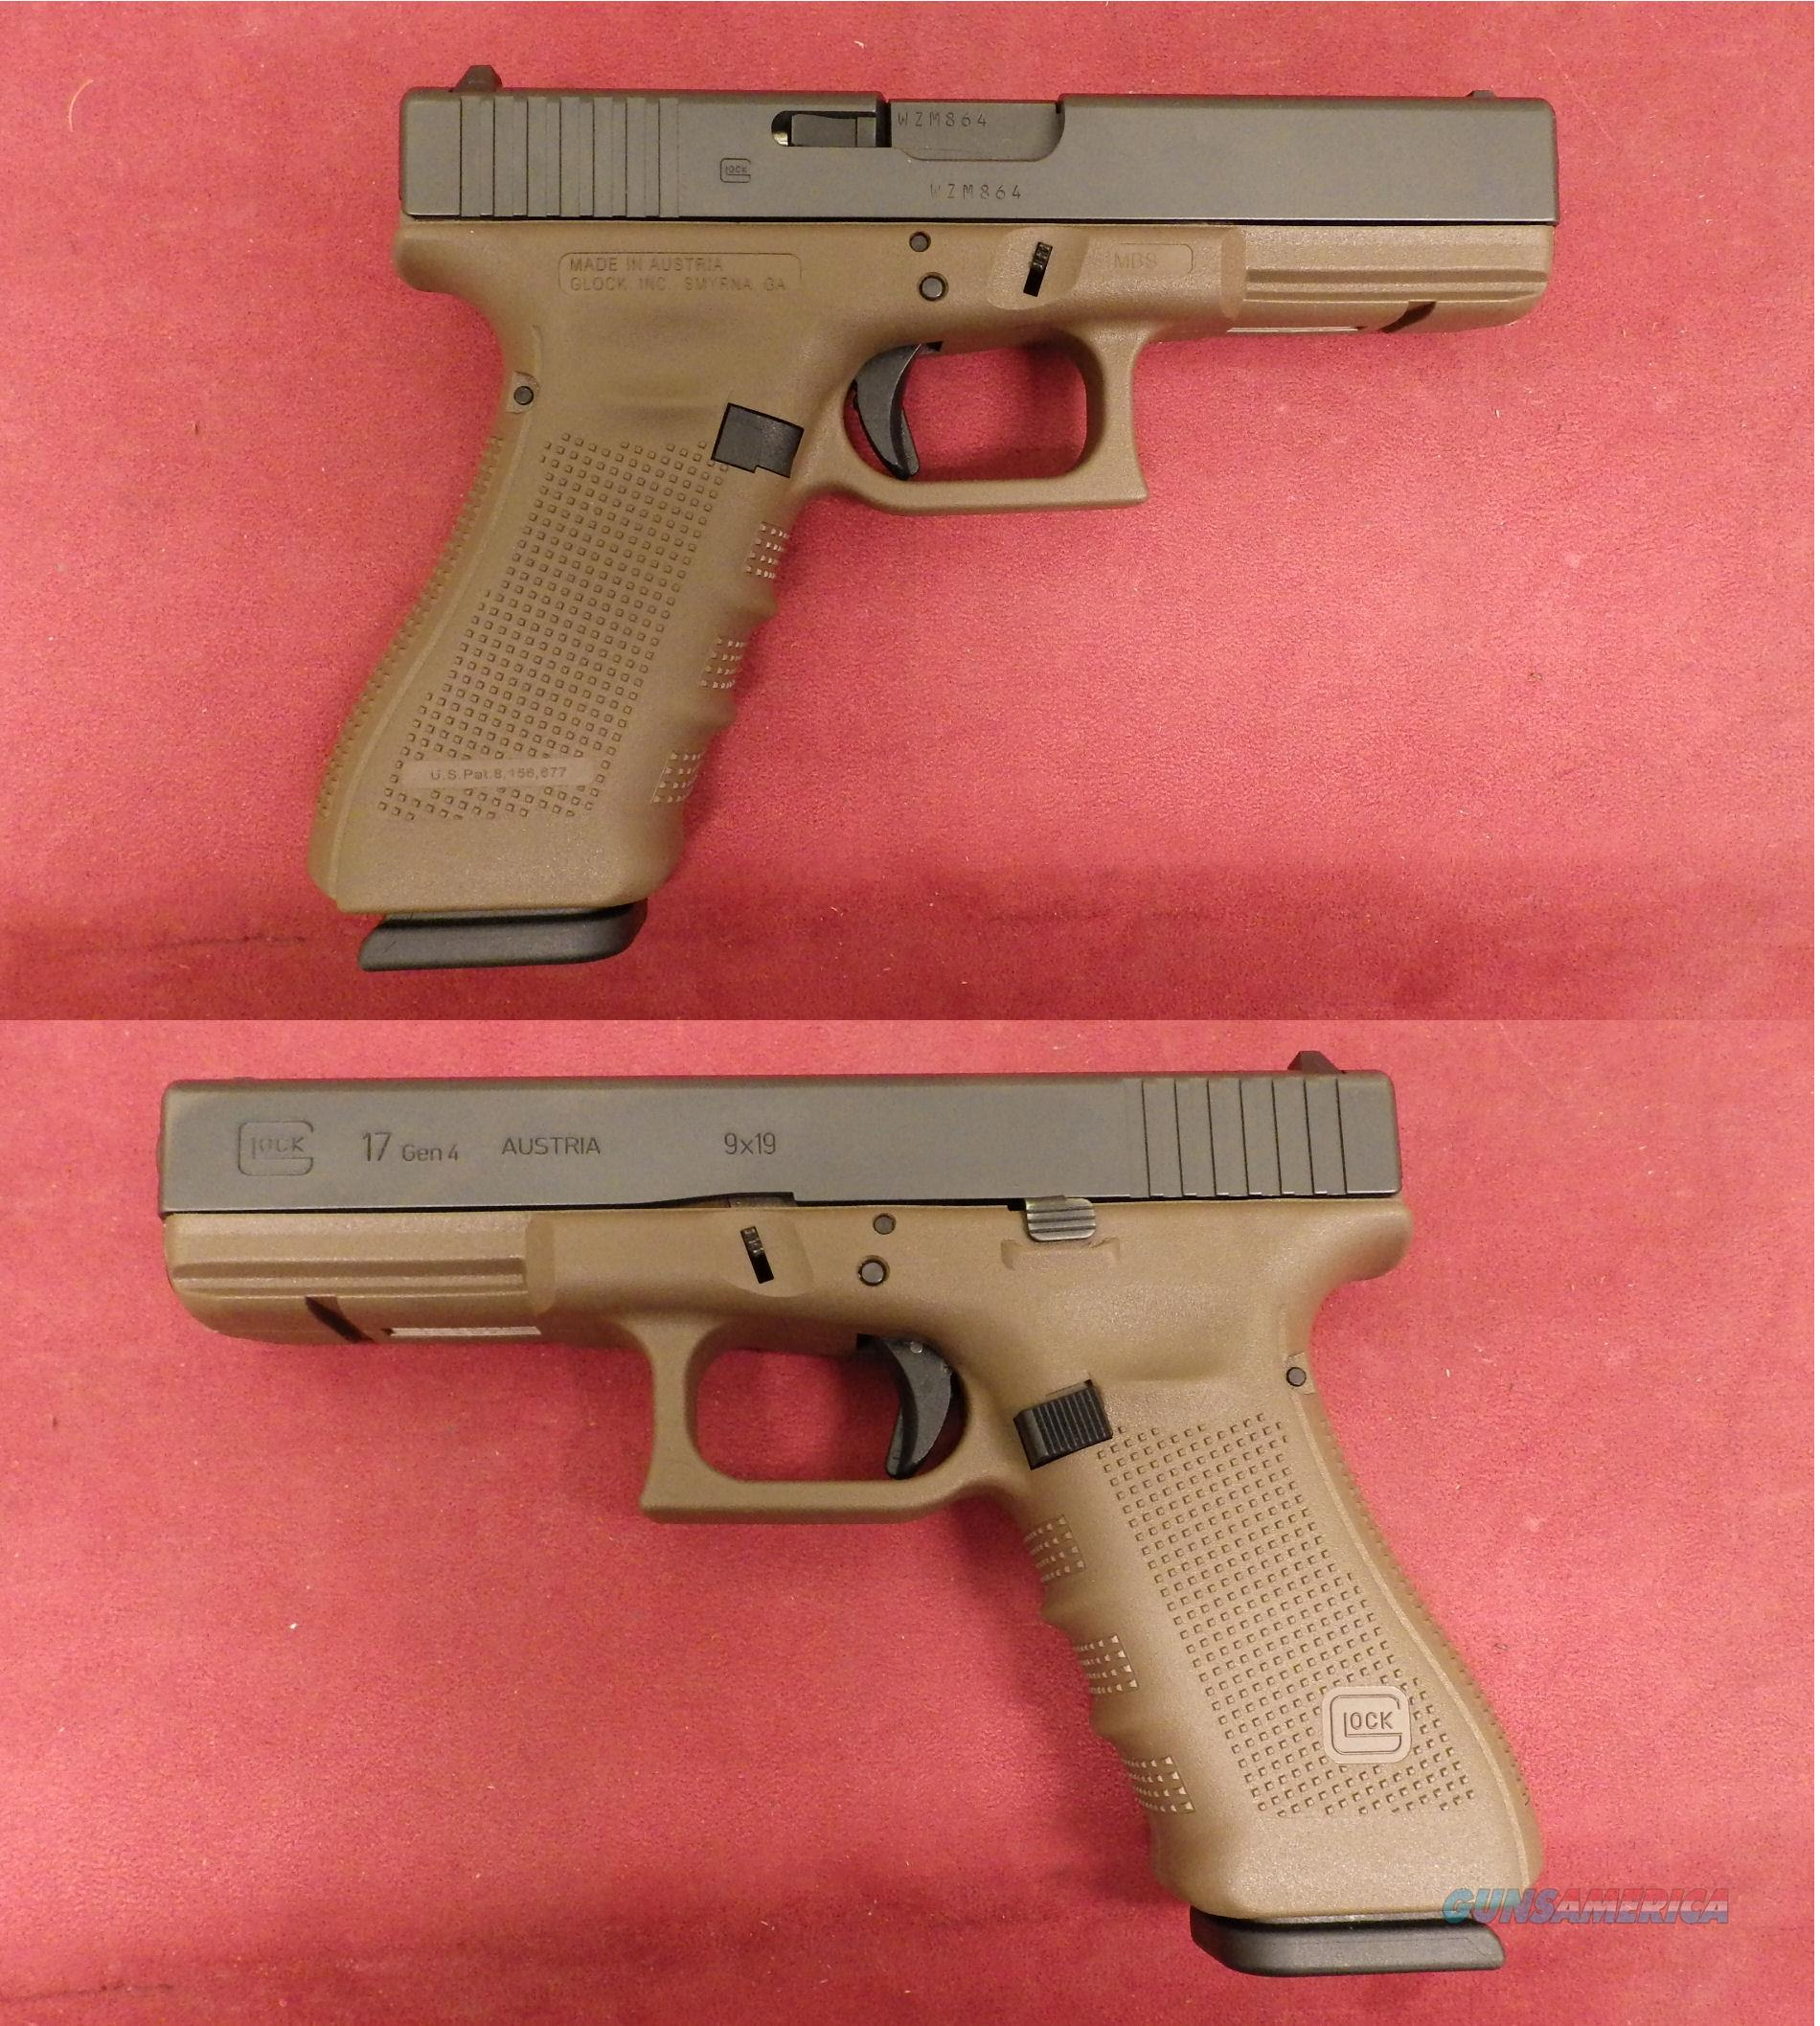 Glock G-17 4th Gen 9mm  Guns > Pistols > Glock Pistols > 17